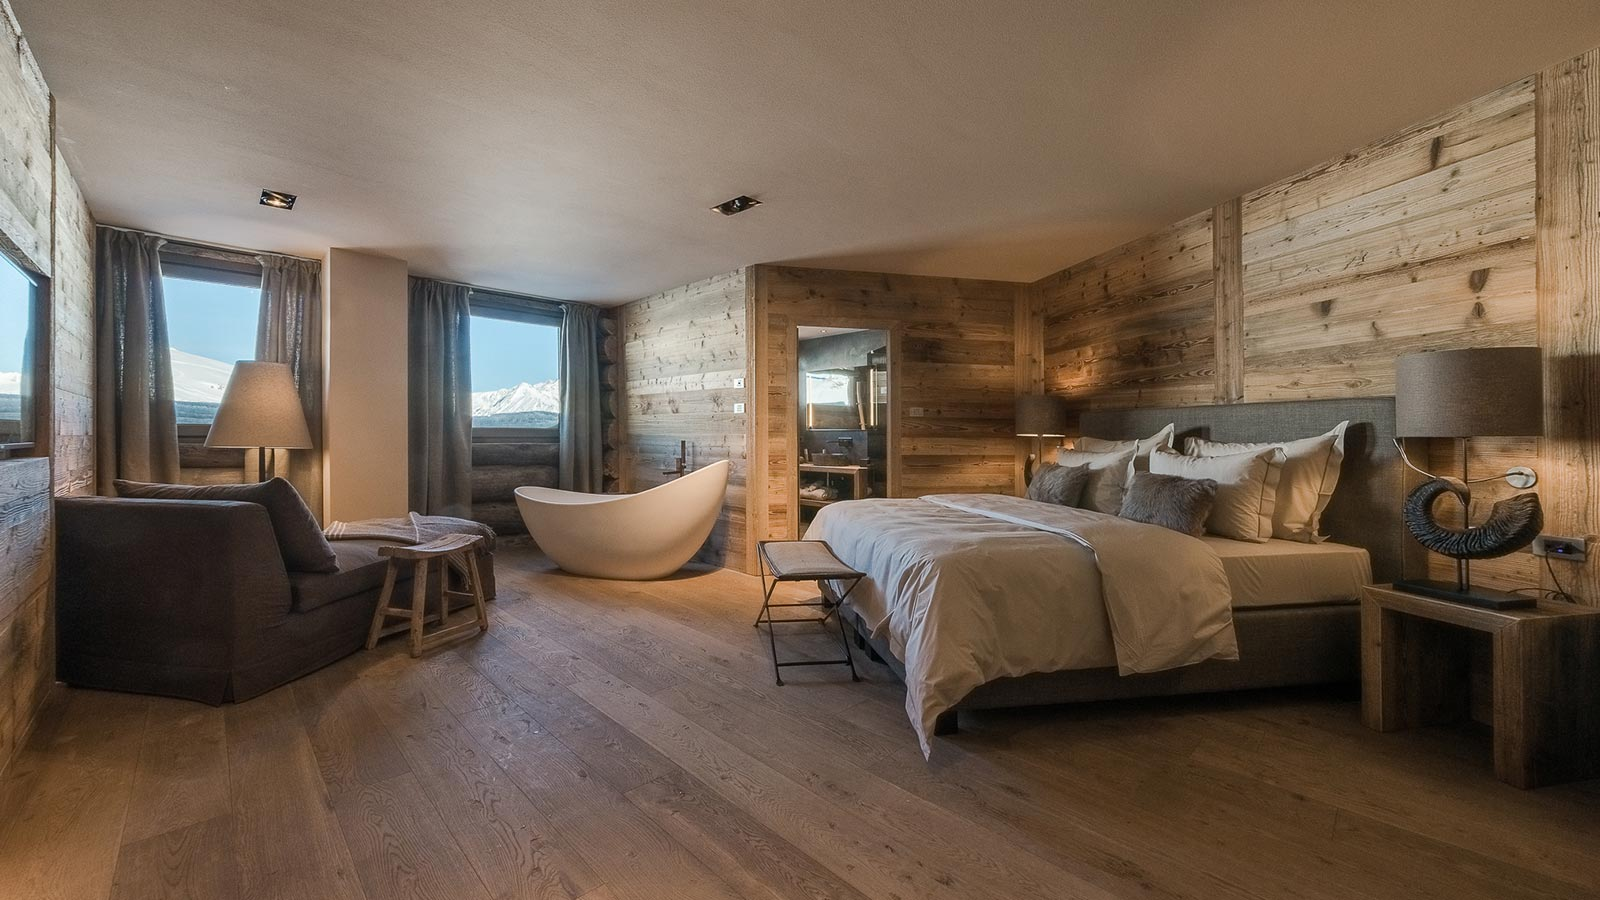 Deluxe suite with 60 sqm of luxury in the mountain lodge